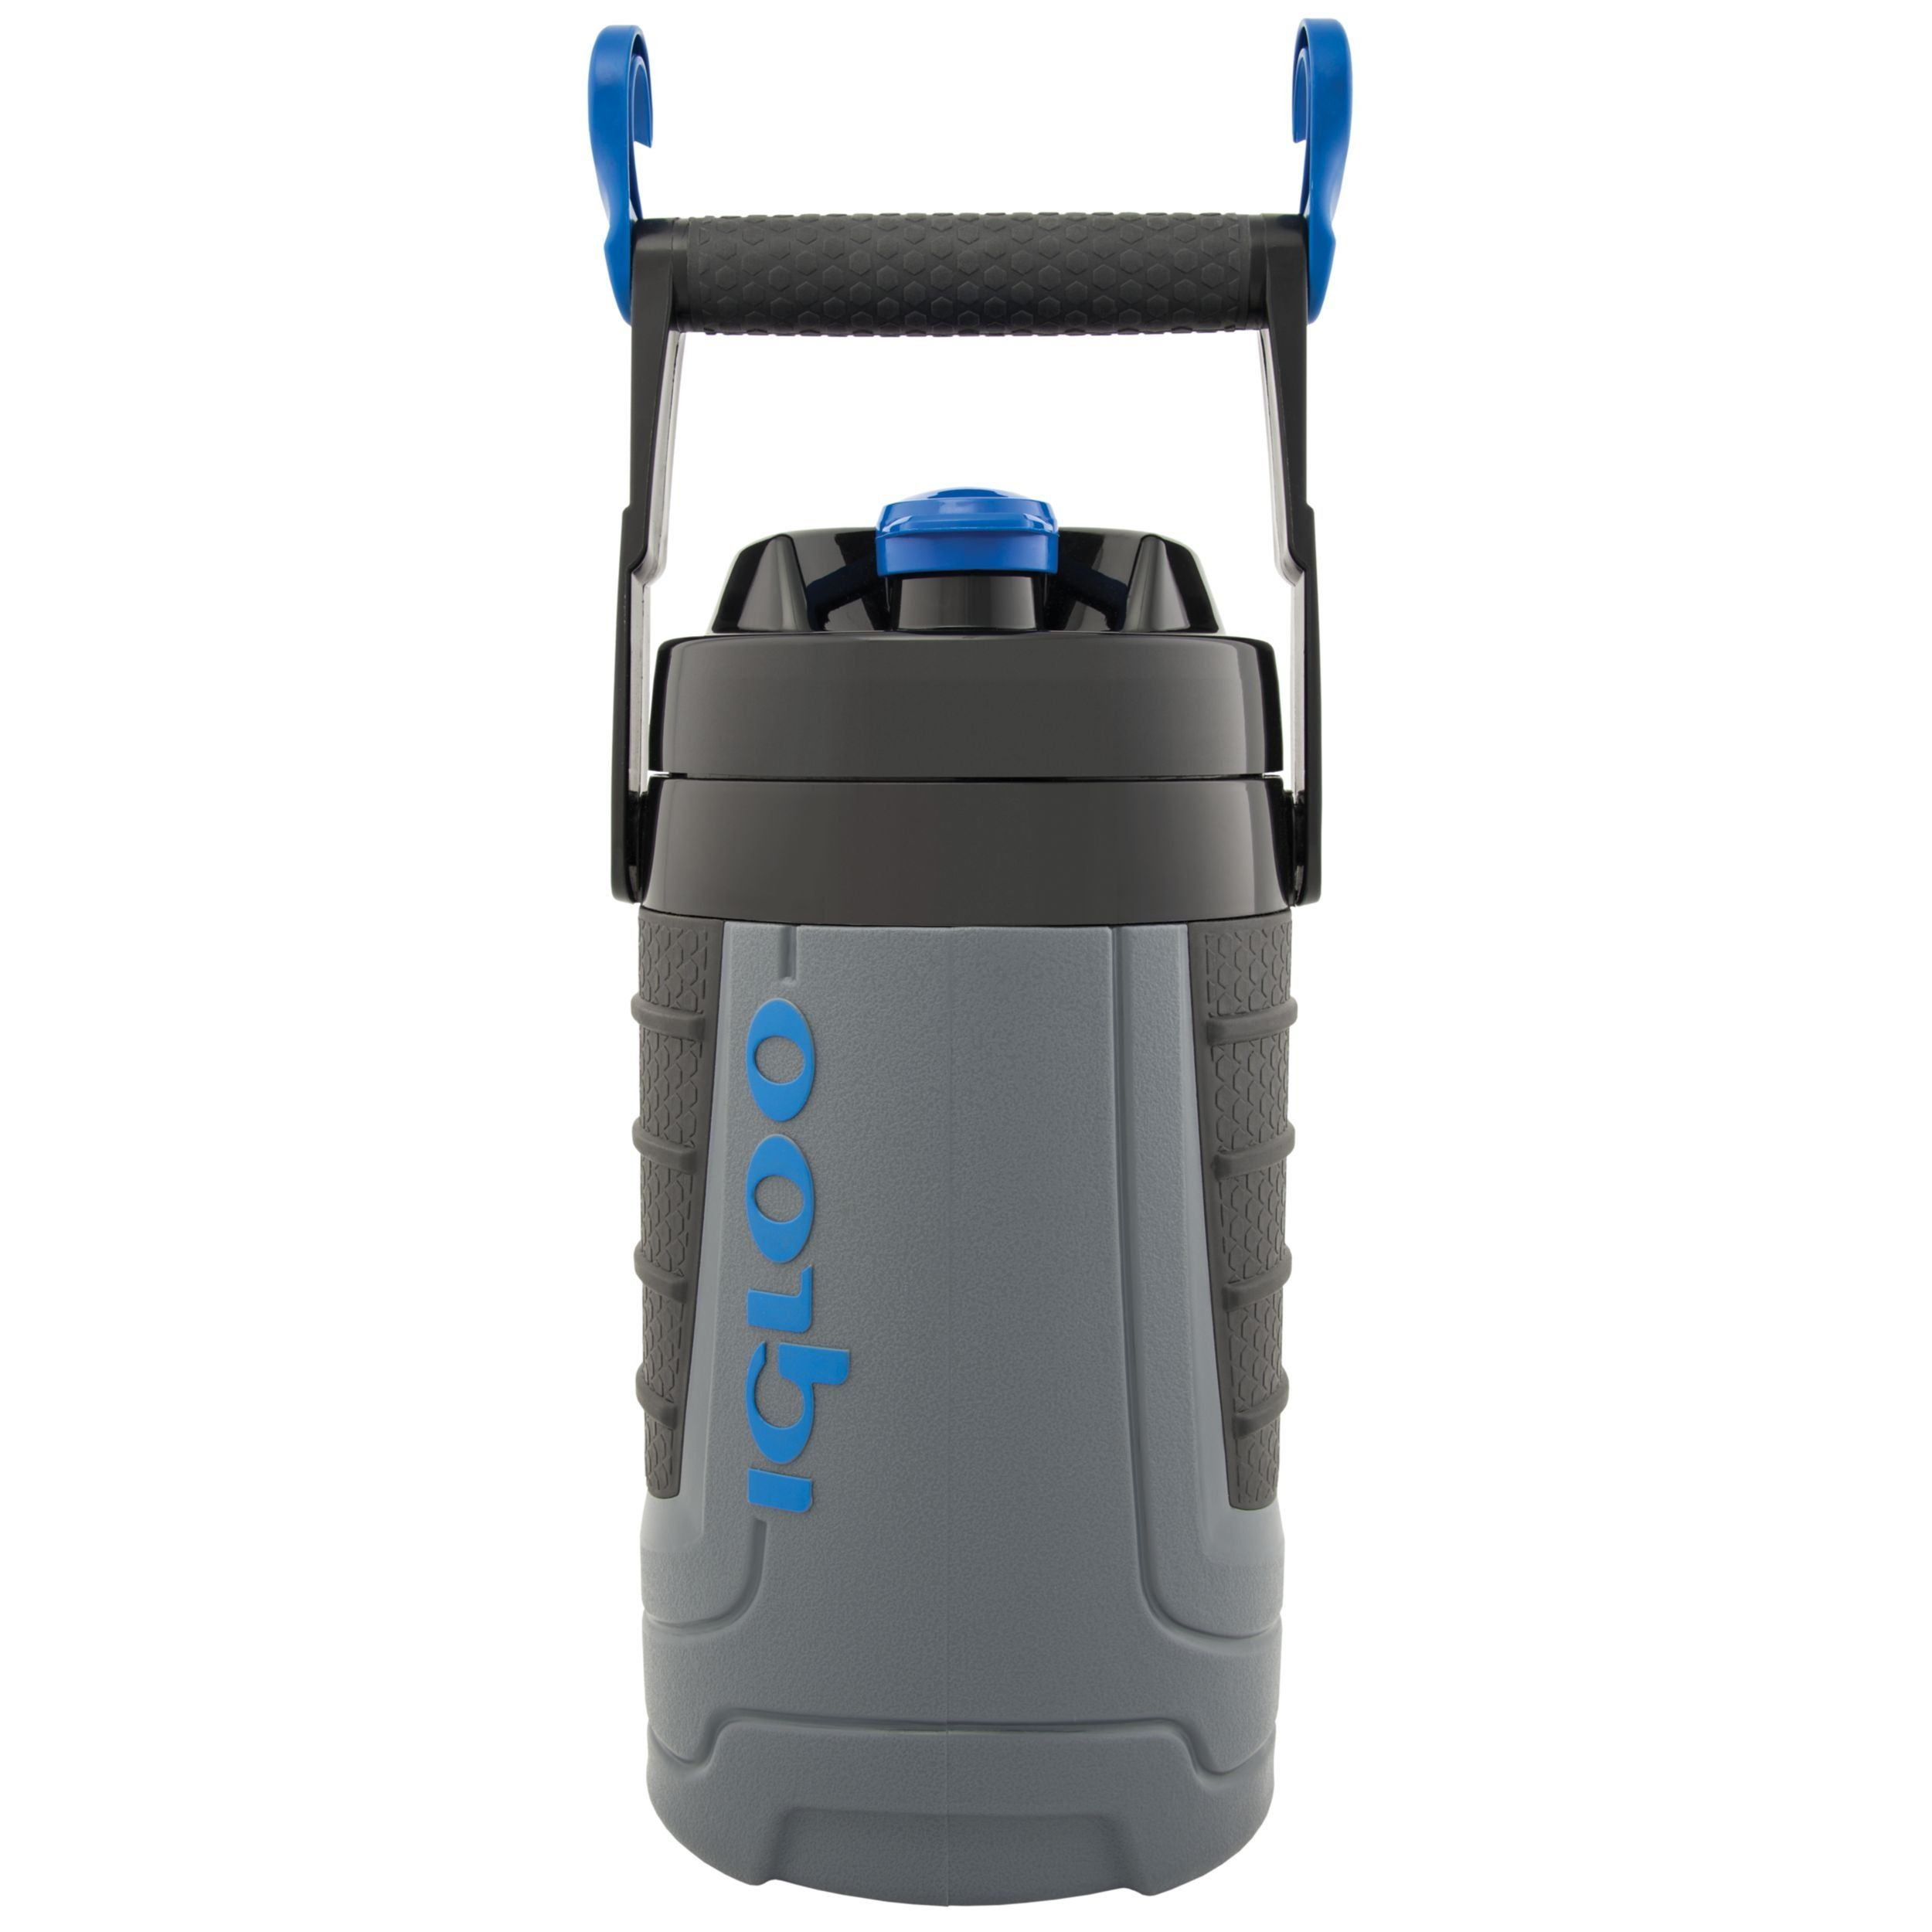 Igloo Proformance Tm 1 2 Gallon Insulated Sports Jug Gray Black Black Royal Blue 64 Oz Read More Reviews Of The Product B In 2020 Gallon Water Jug Water Jug Jugs